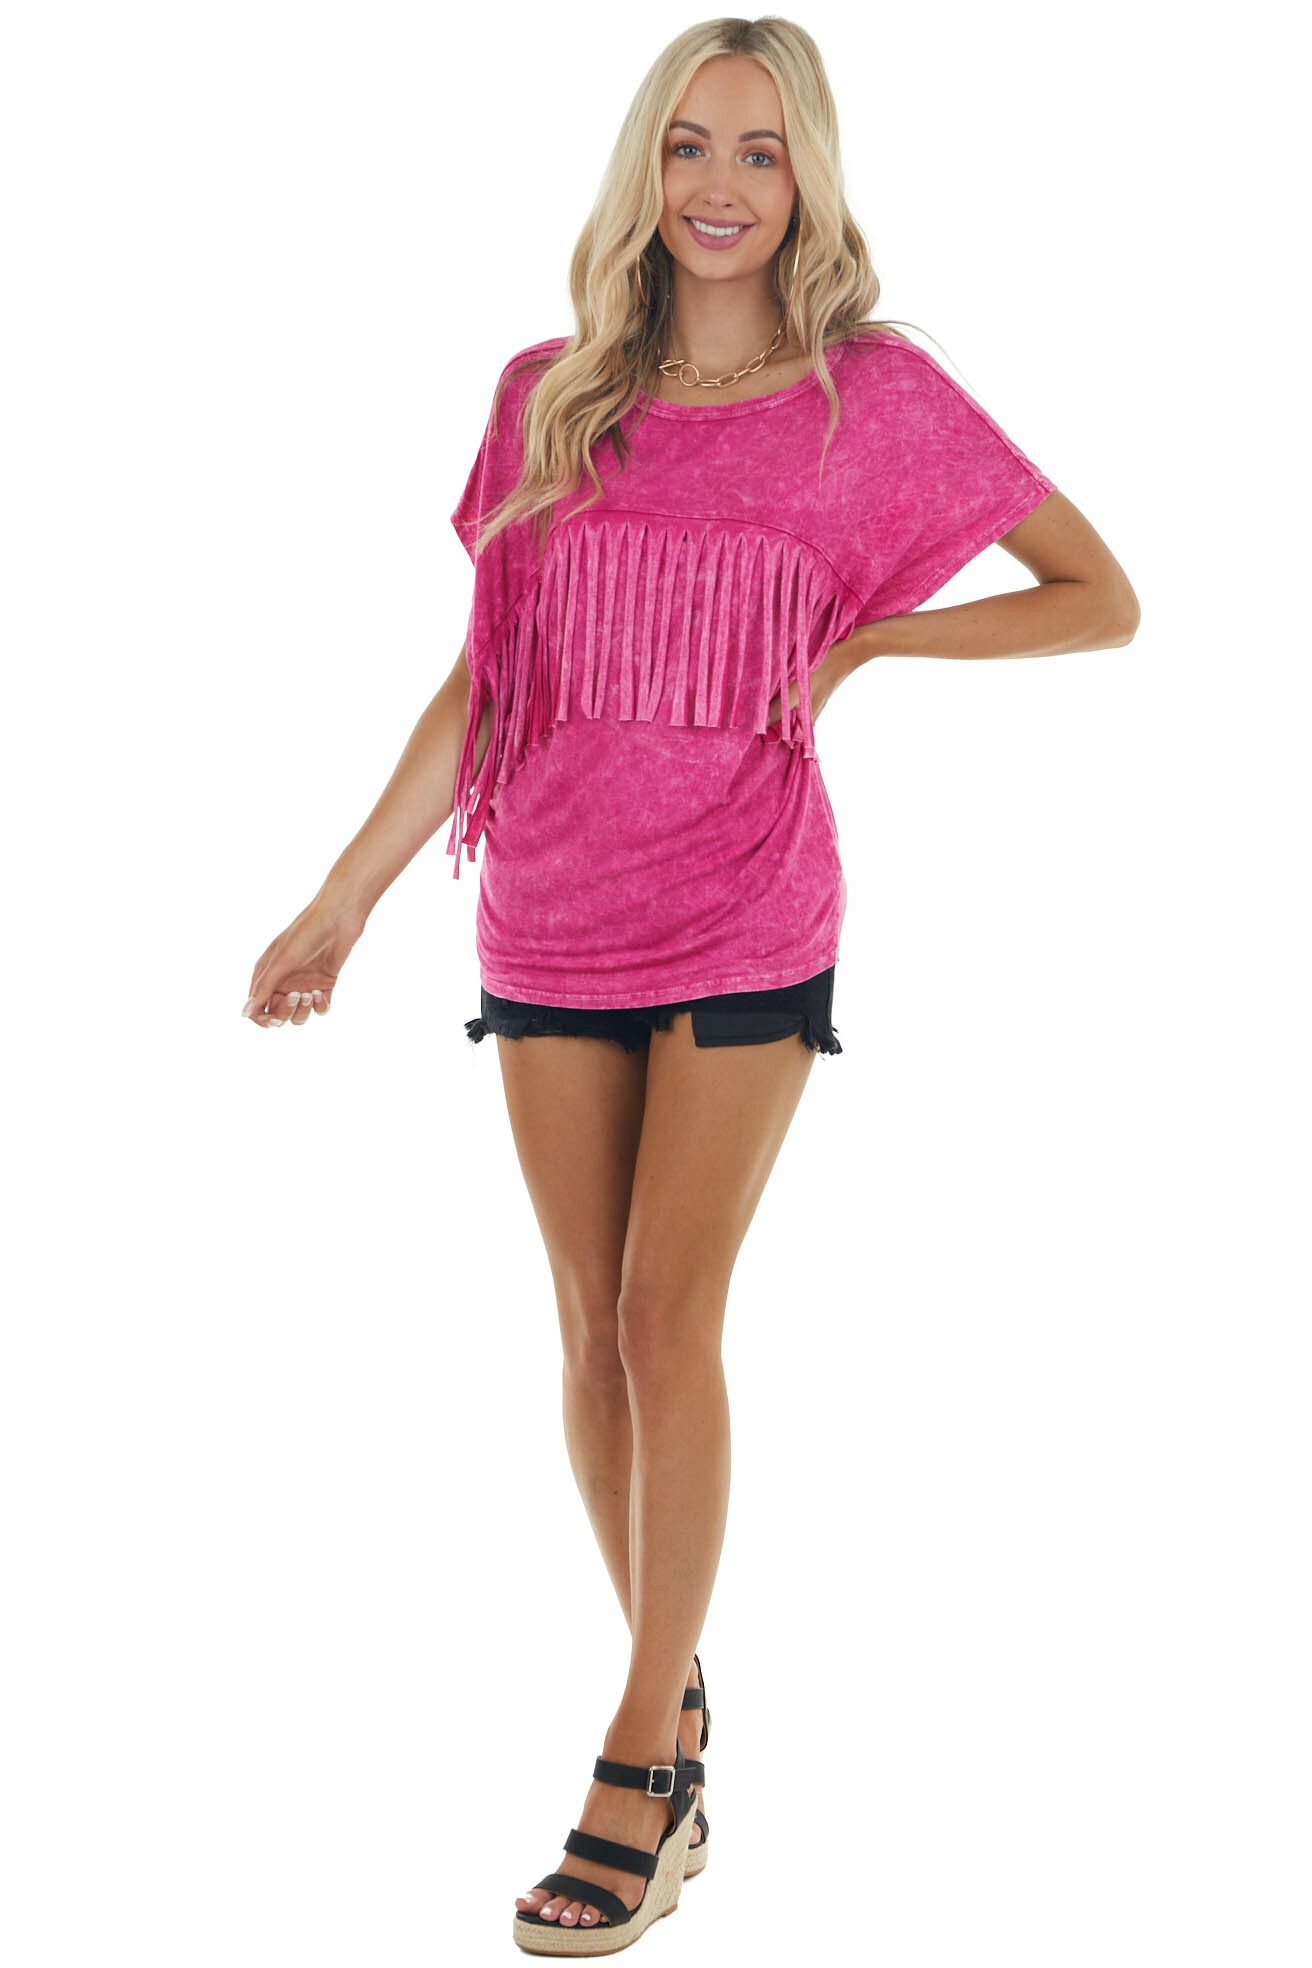 Deep Magenta Mineral Wash Knit Top with Fringe Details